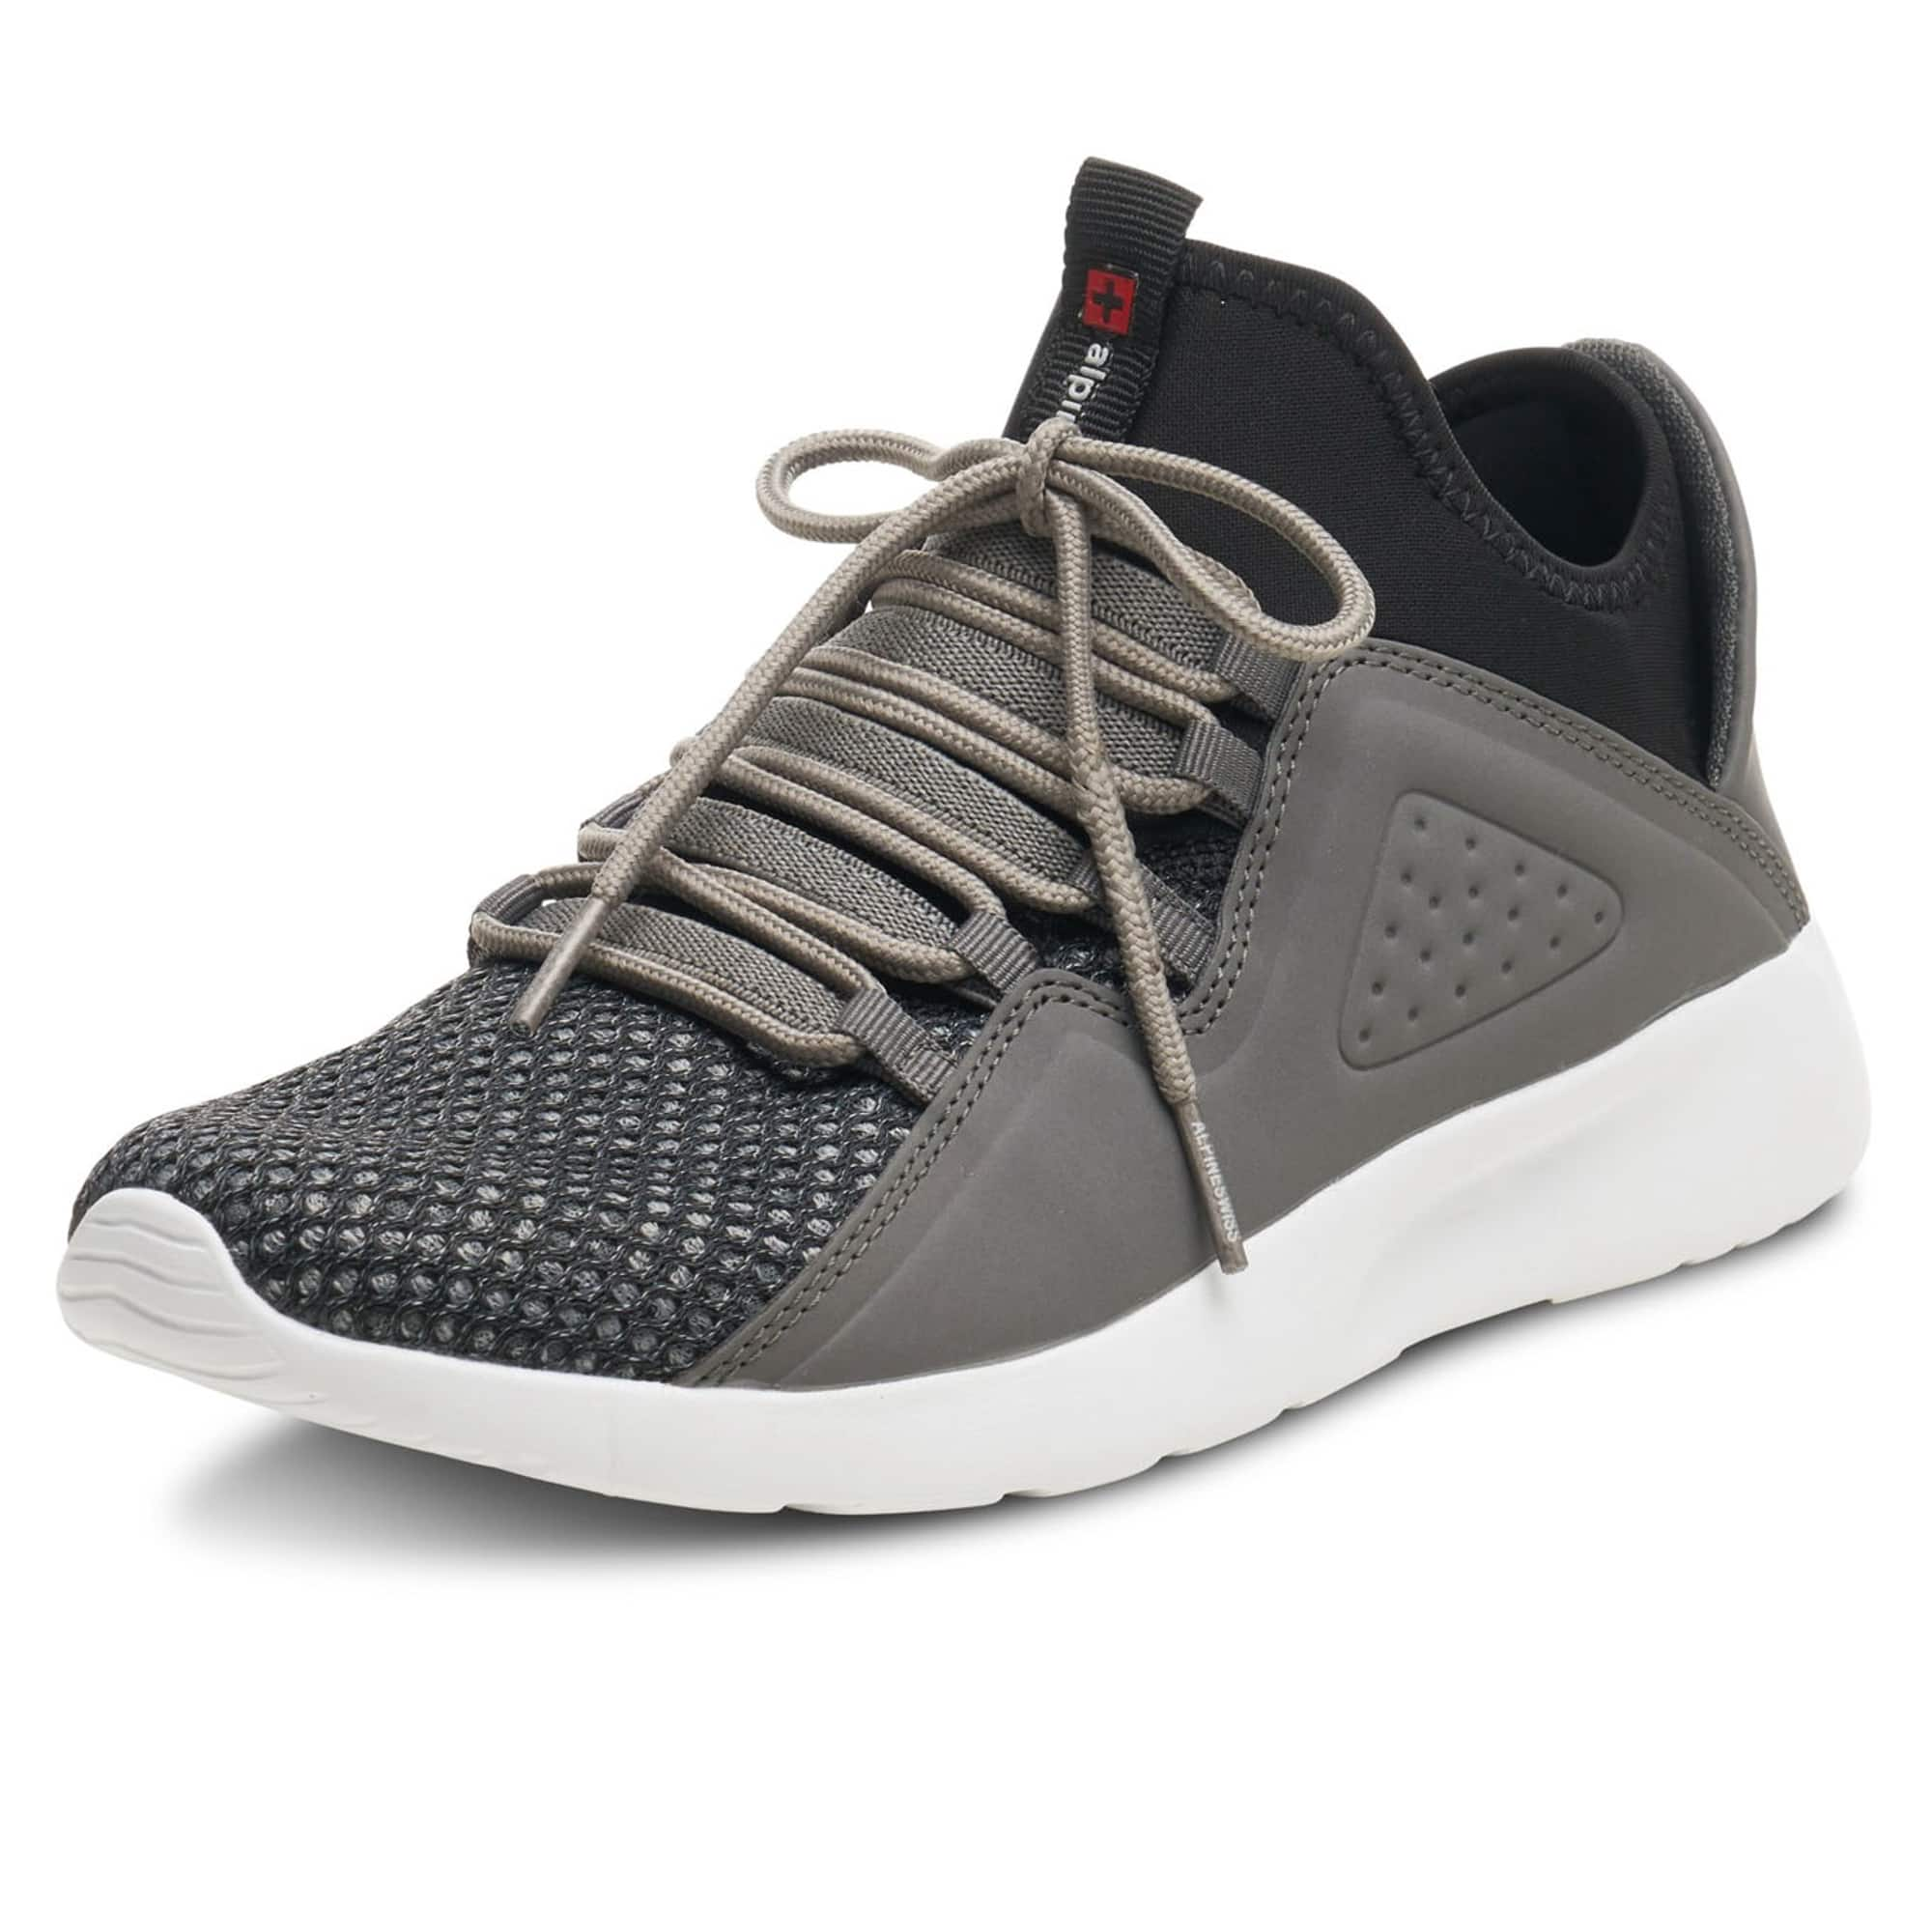 Alpine Swiss Enzo Men's Fashion Sneakers $23.99 + Free Shipping